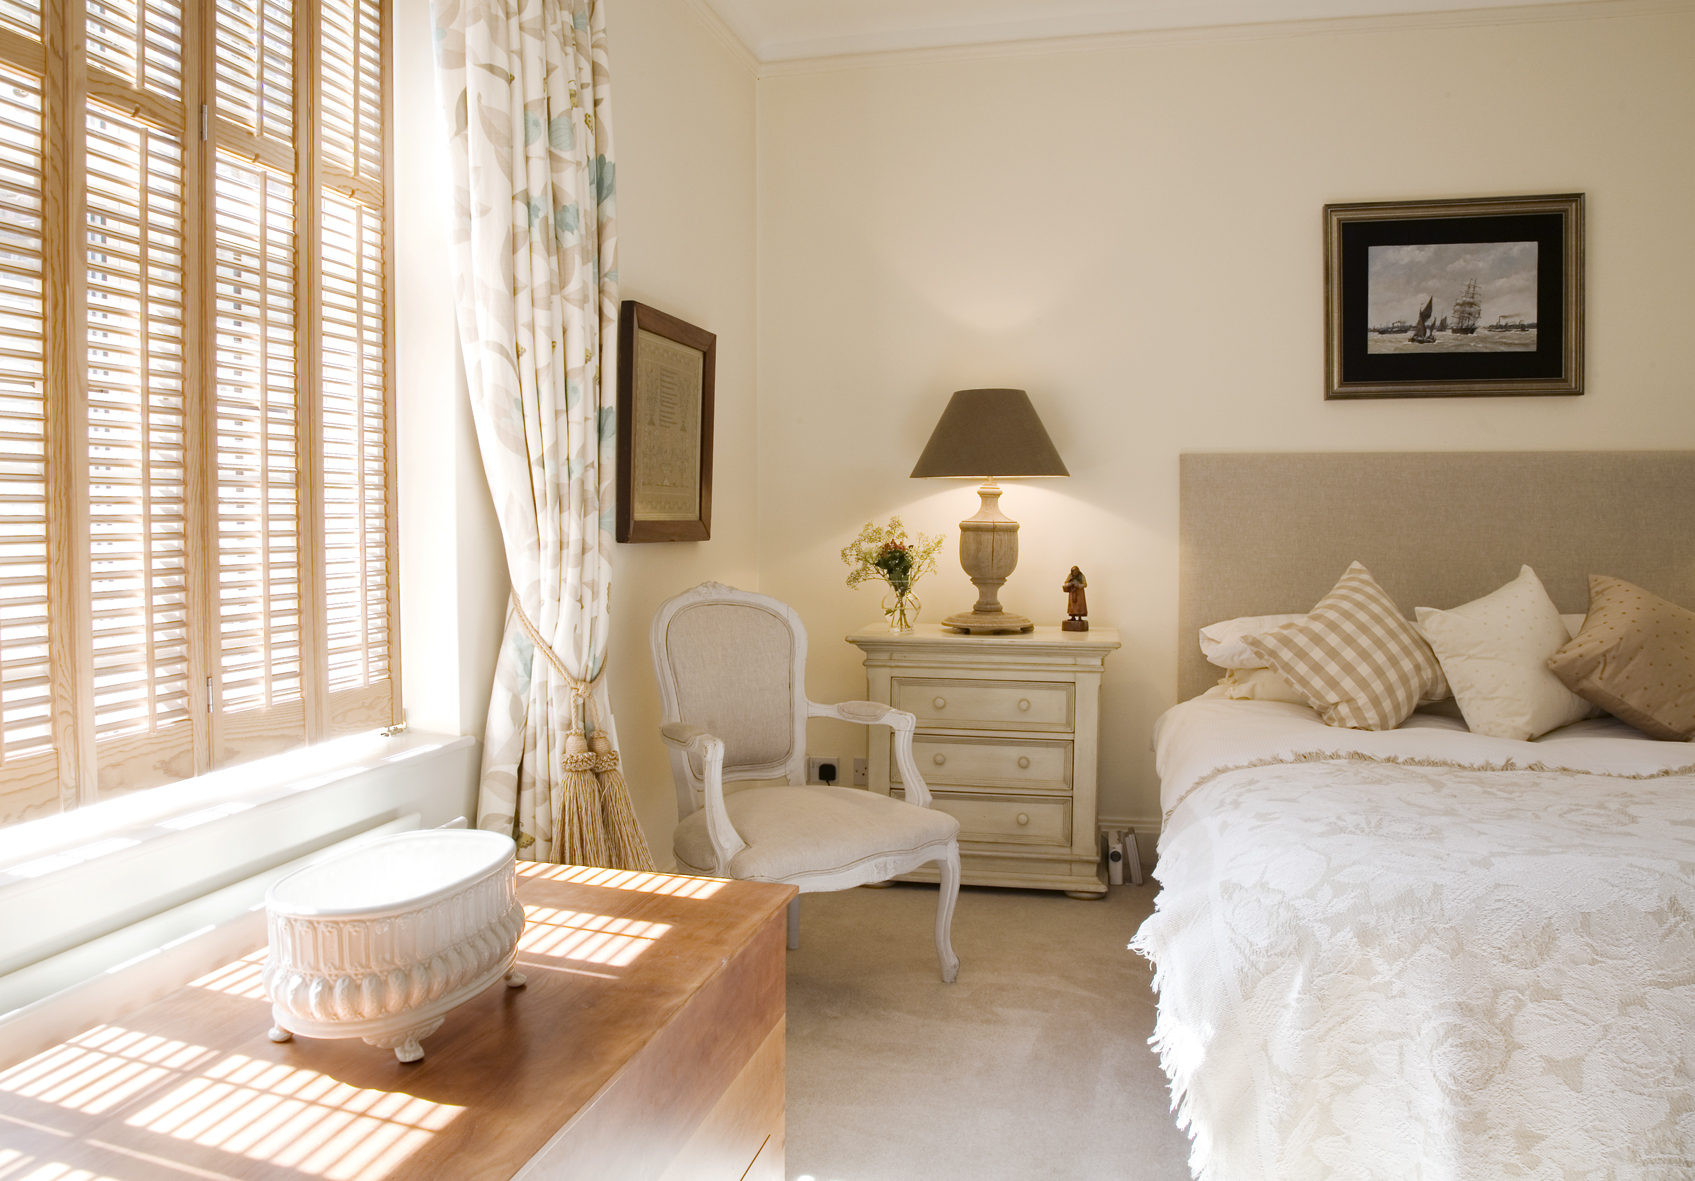 English country in the city gaff adrienne chinn 39 s for English style interior design